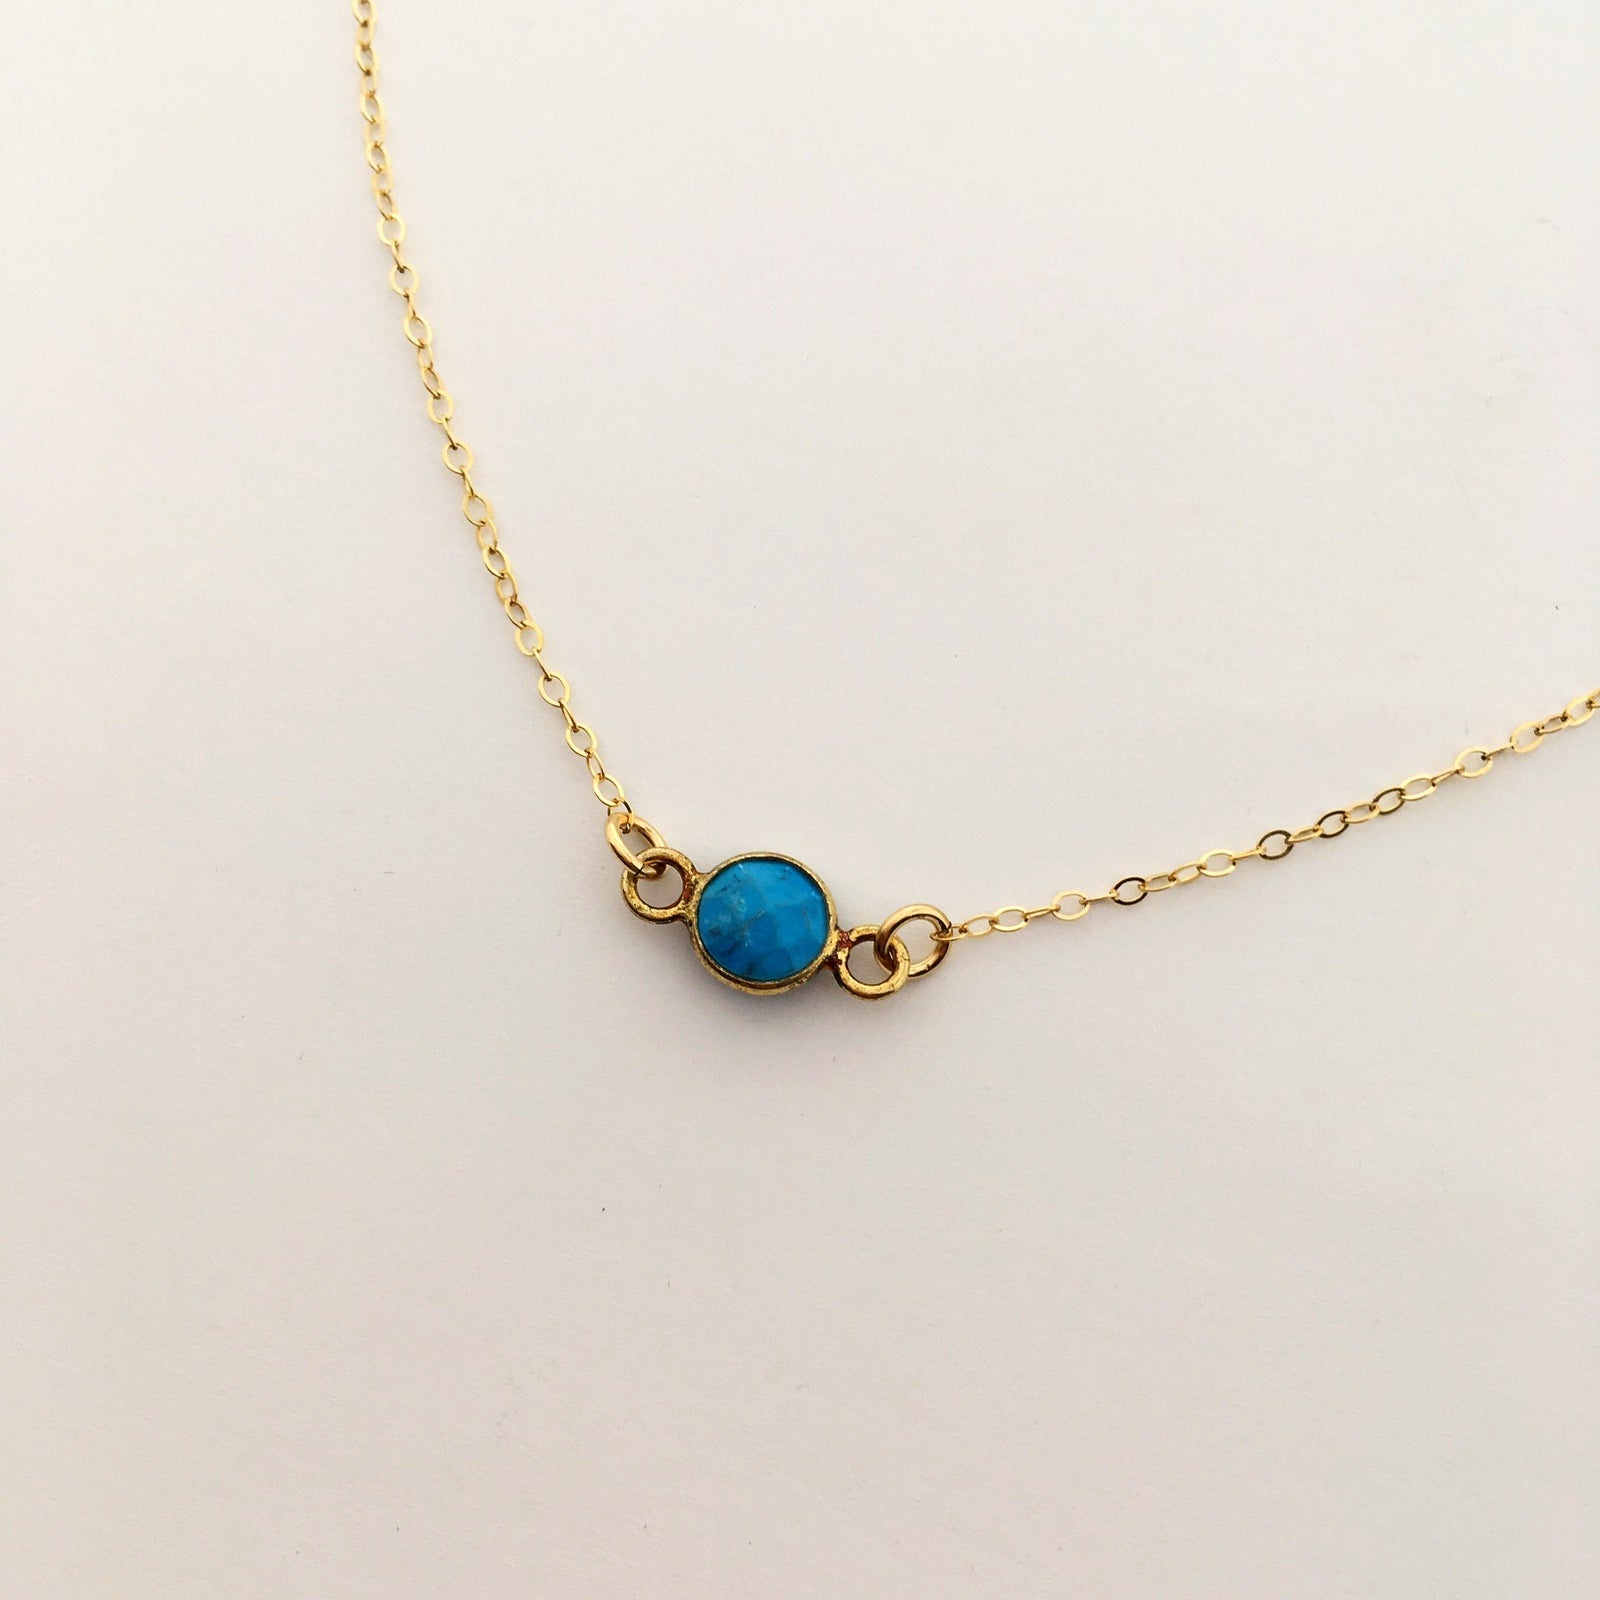 14K GOLD-FILLED TURQUOISE STONE NECKLACE